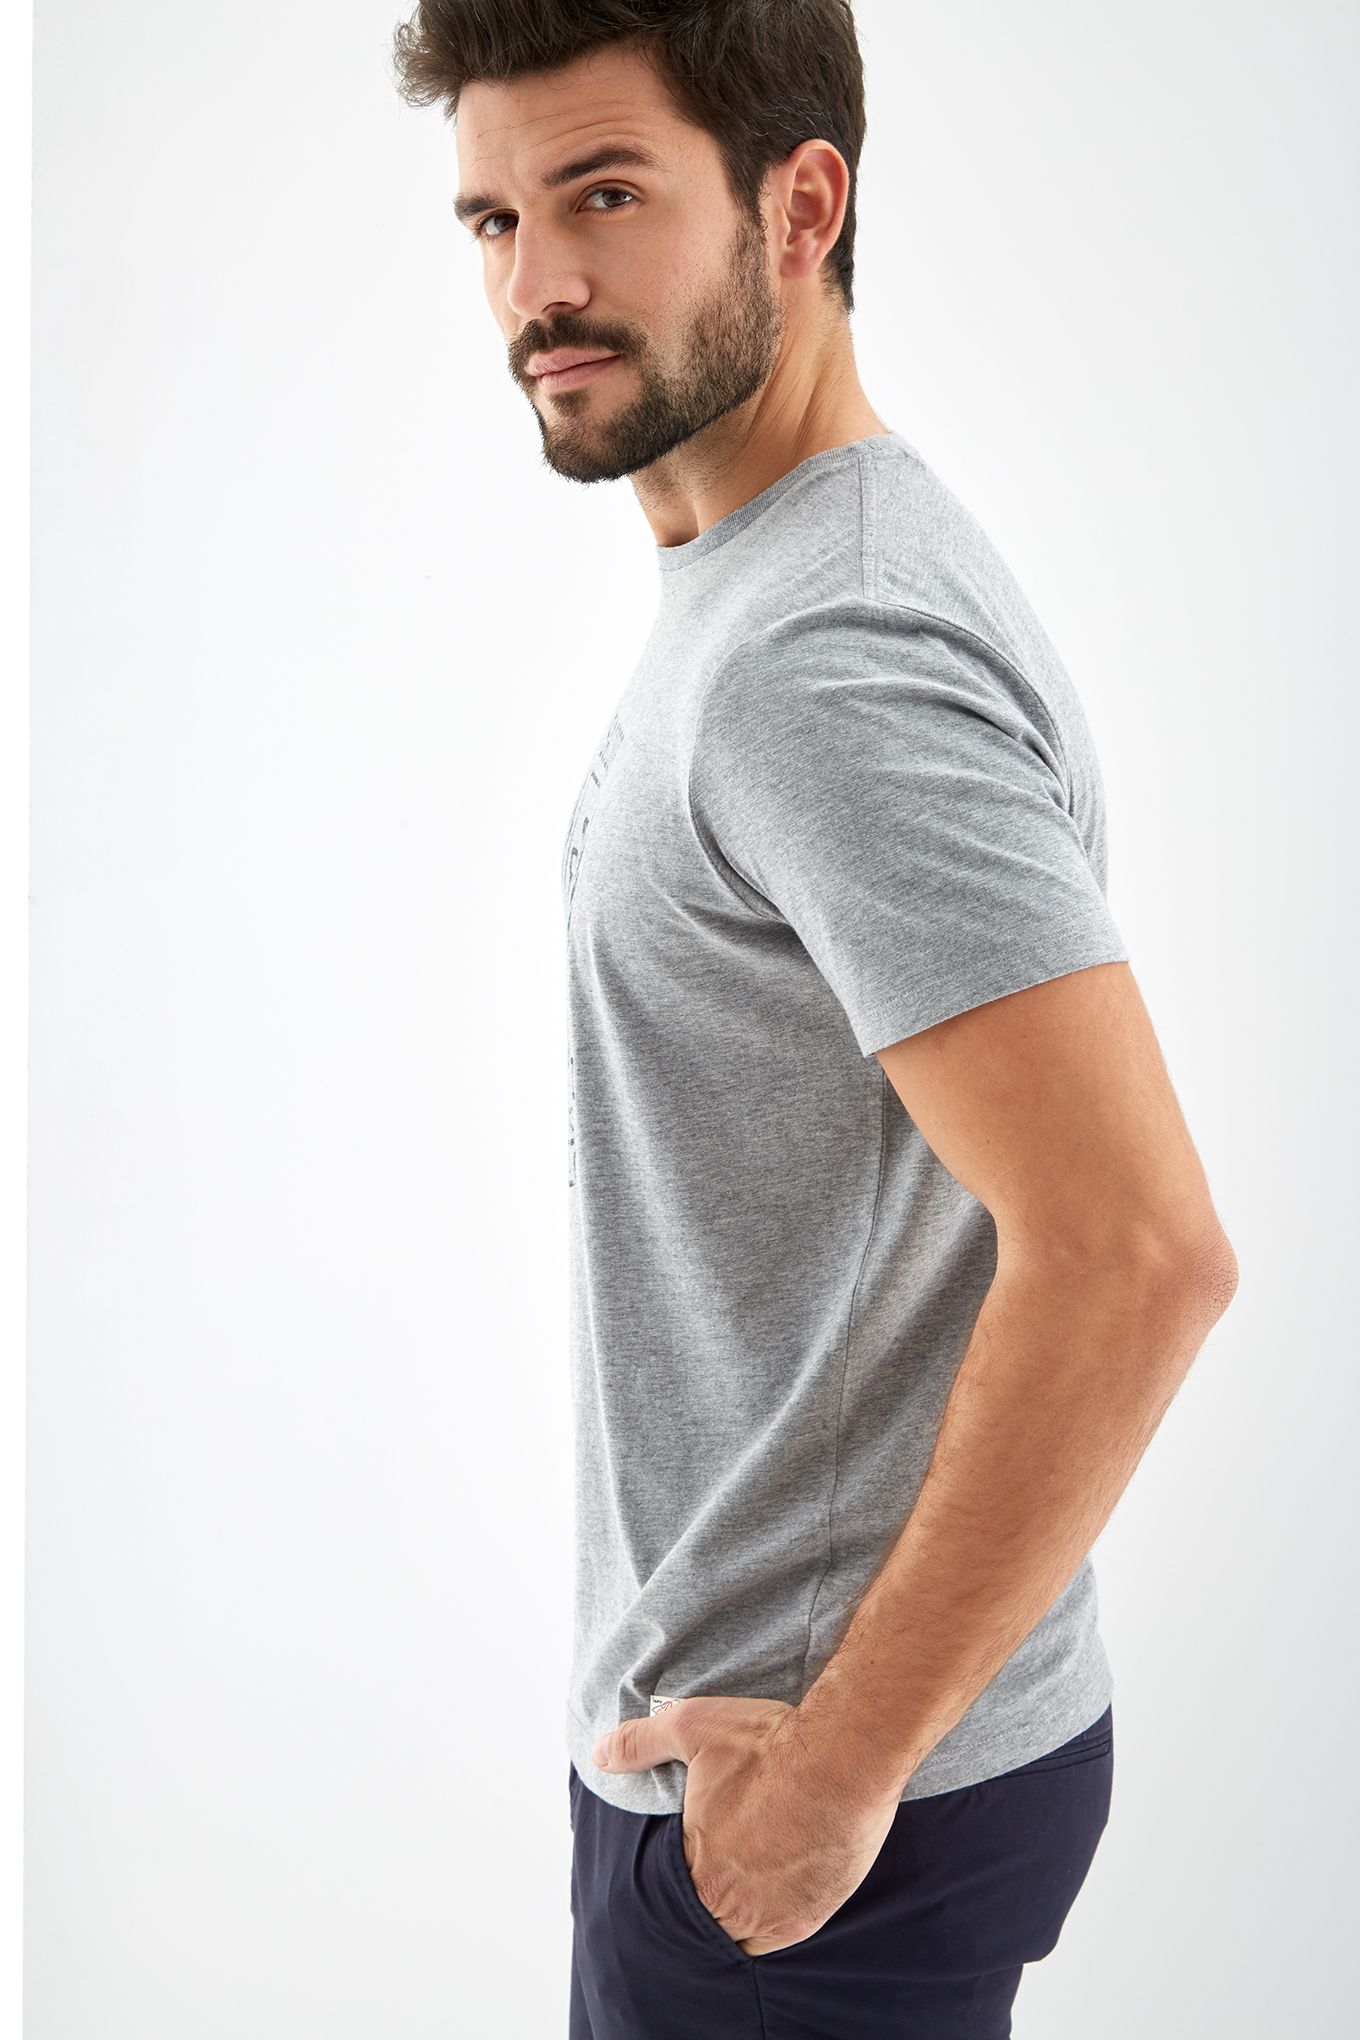 T-Shirt Mix Grey Sport Man